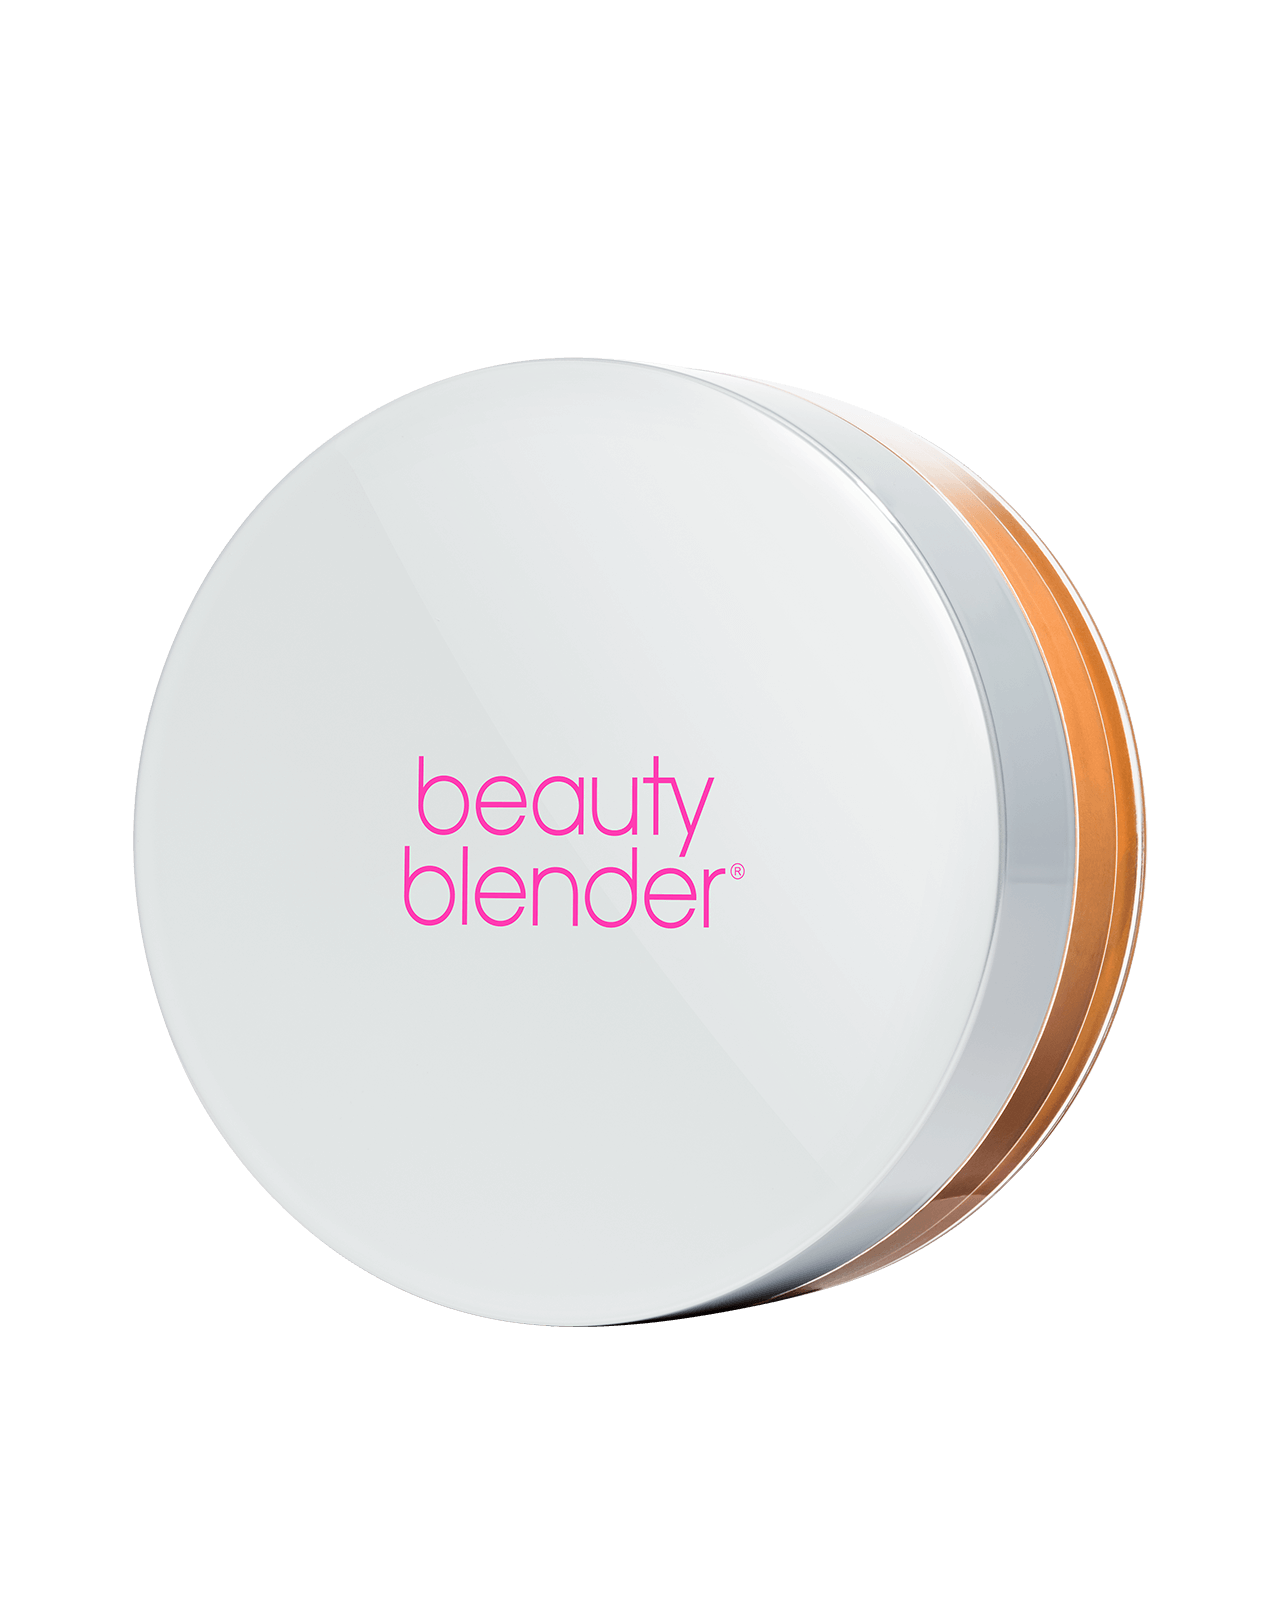 BOUNCE™ Soft Focus Gemstone Setting Powder in Topaz